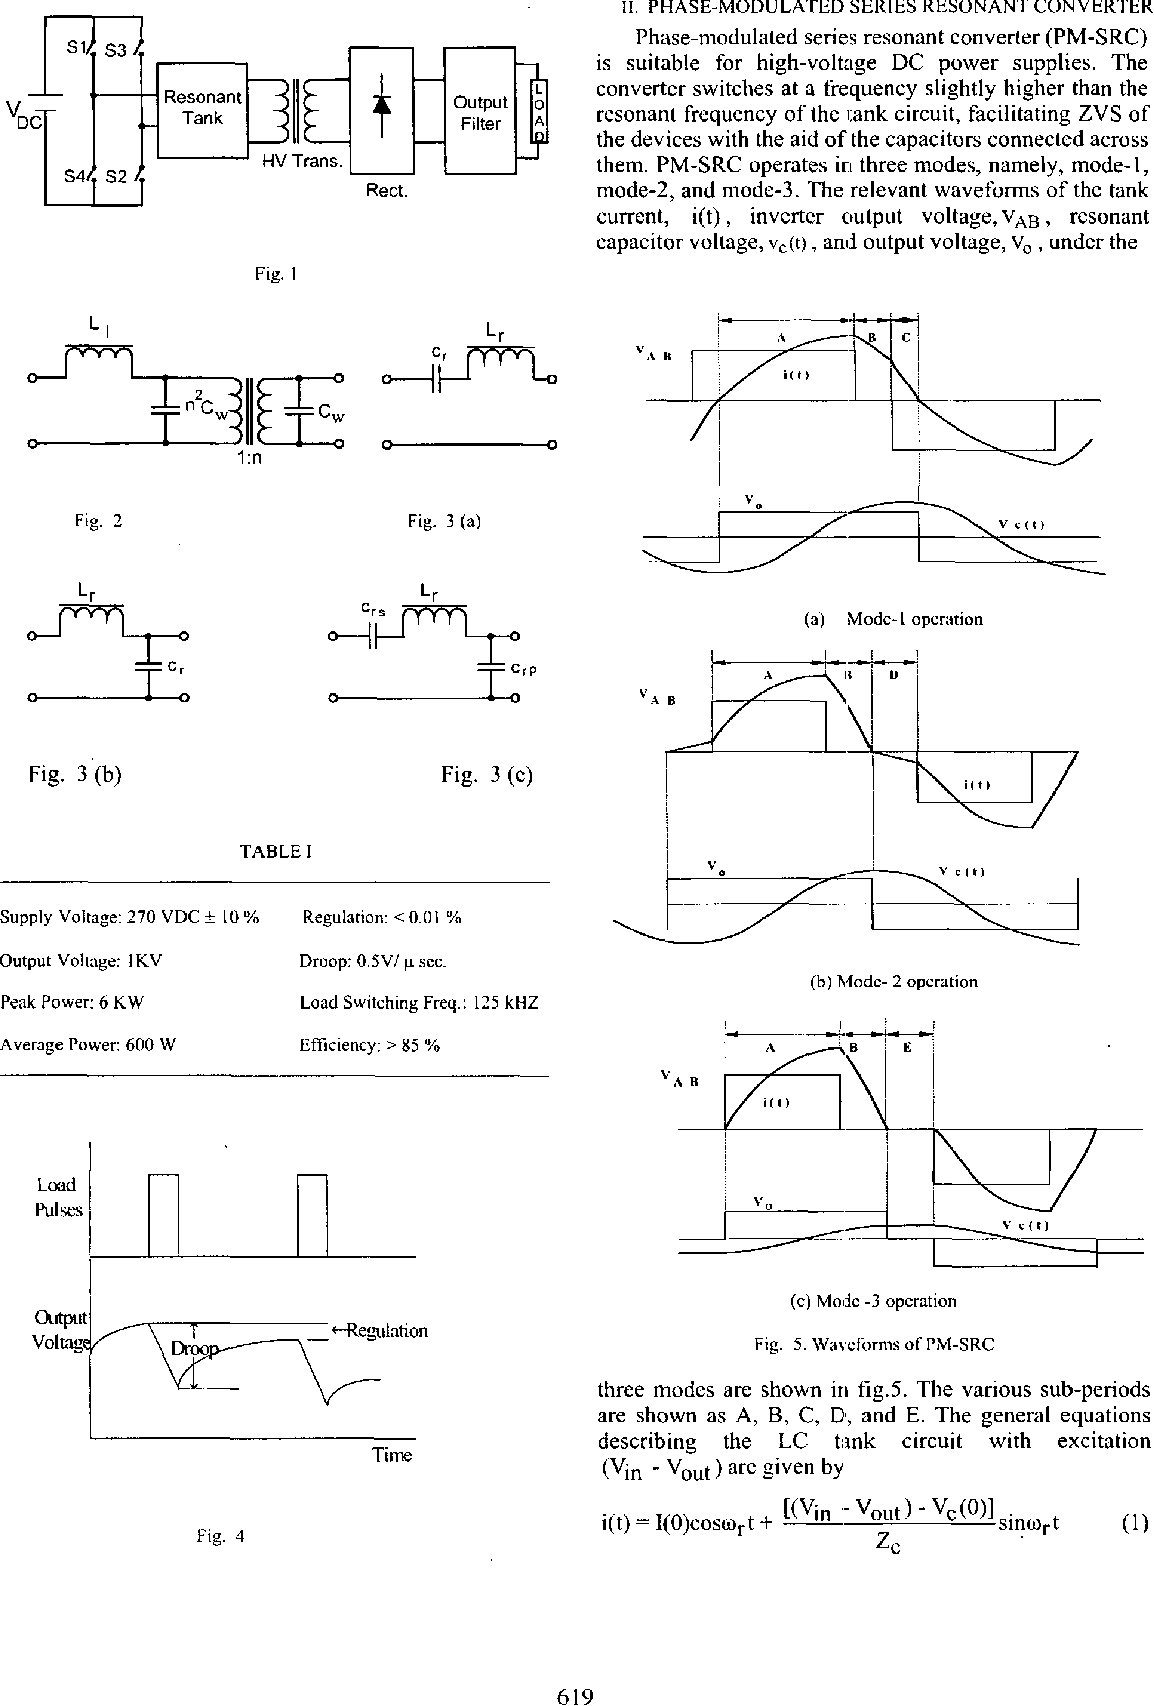 High voltage DC power supply topology for pulsed load